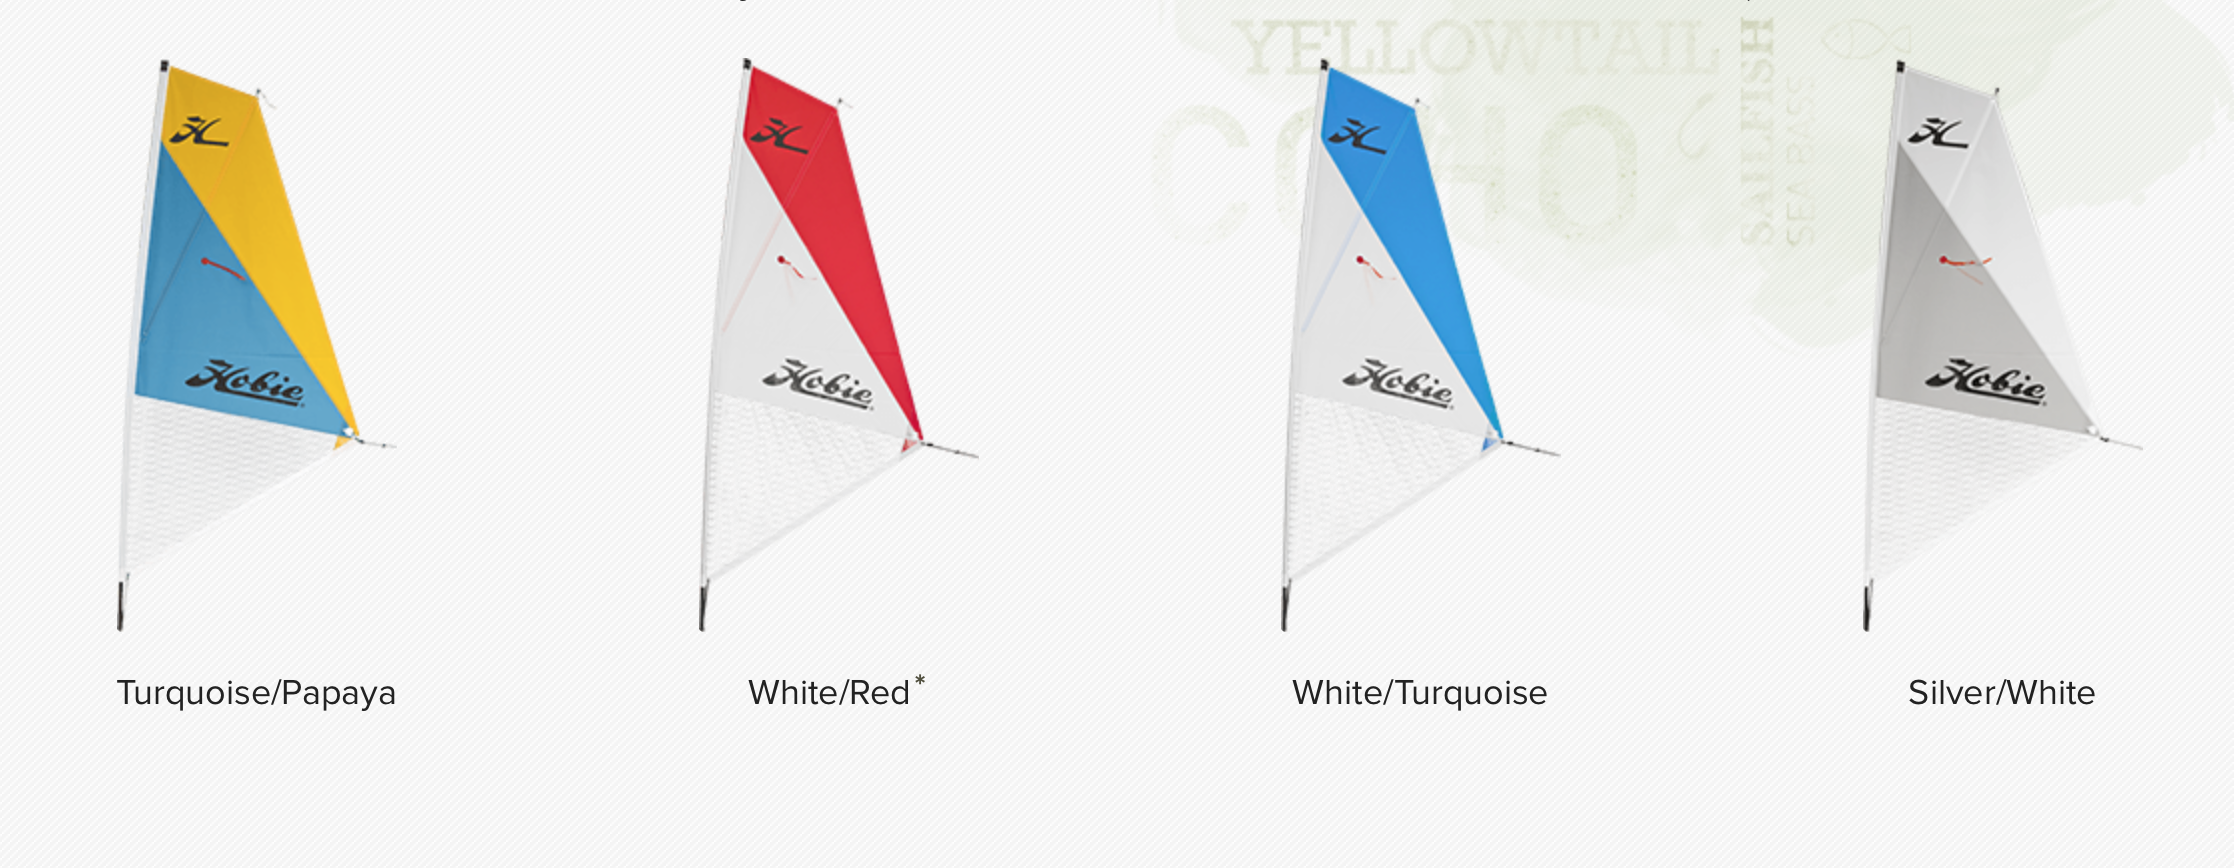 Hobie Mirage Kayak Sail Kit